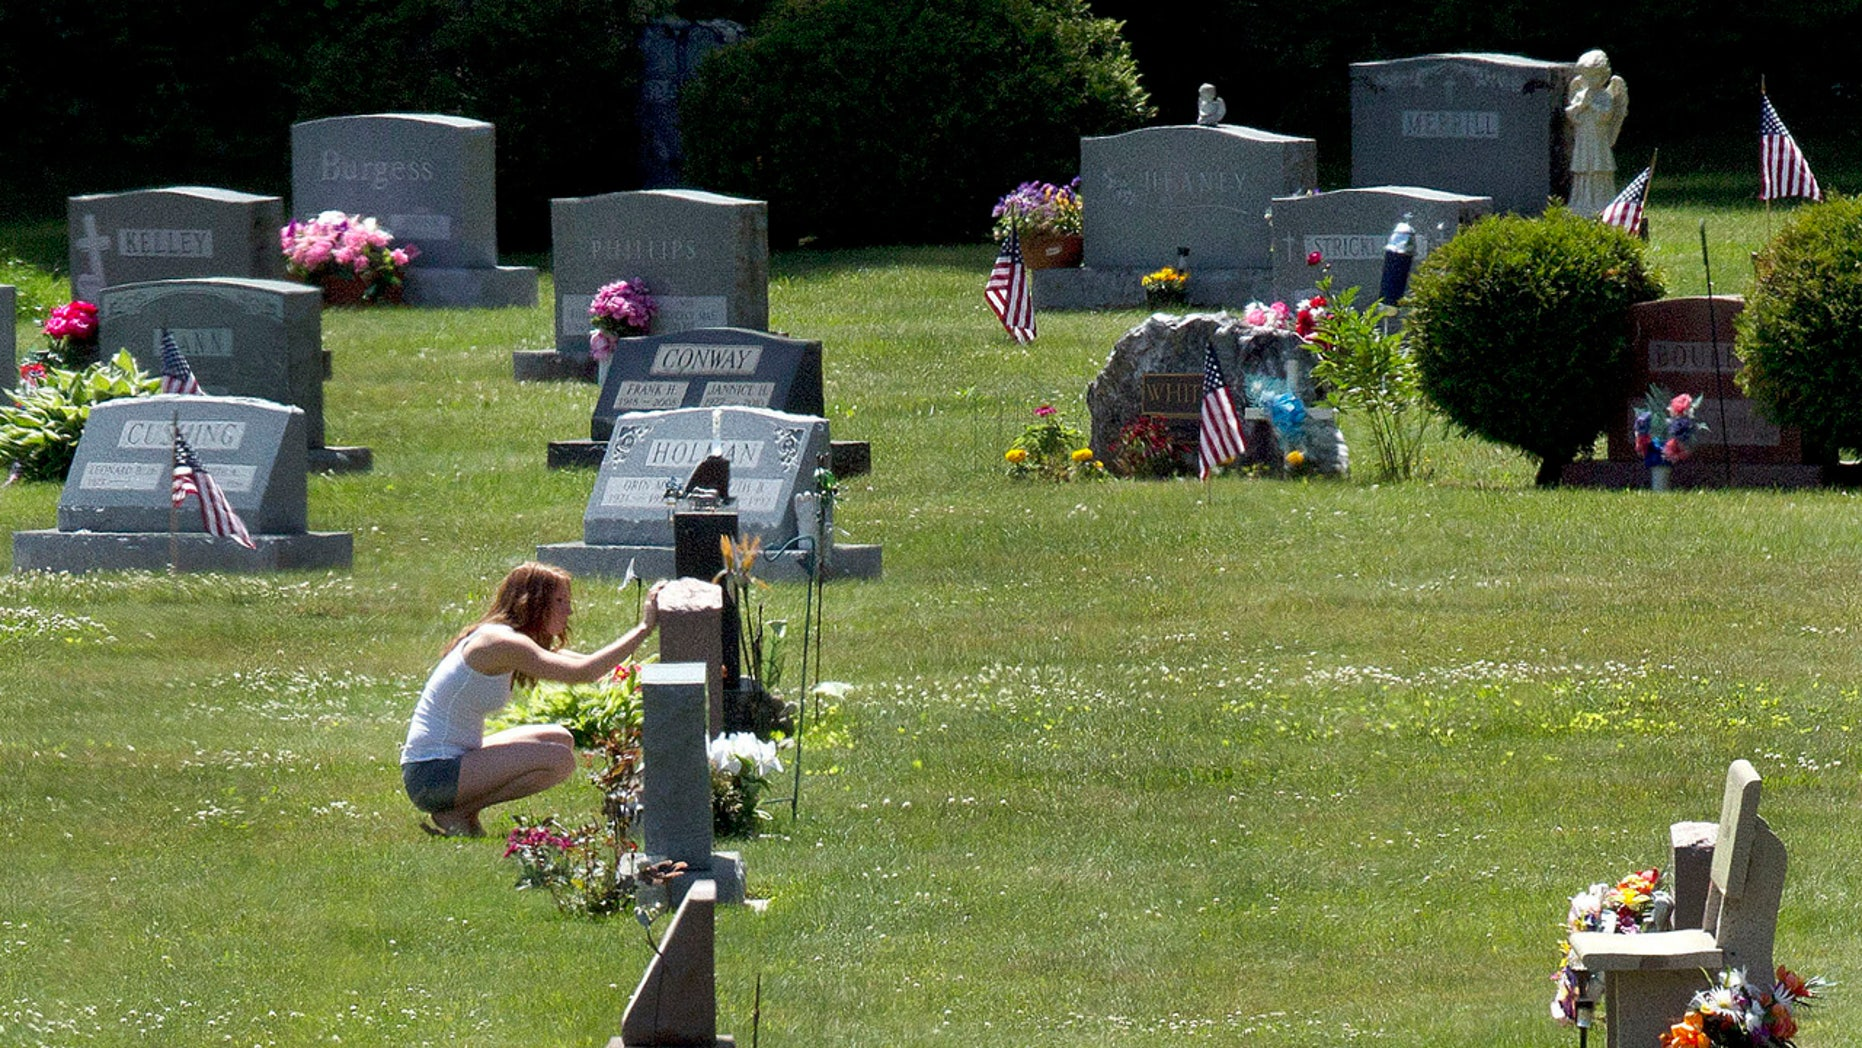 FILE - In this June 17, 2016 file photo, Erika Marble visits the gravesite of Edward Martin III, her fiancé and father of her two children, in Littleton, N.H.